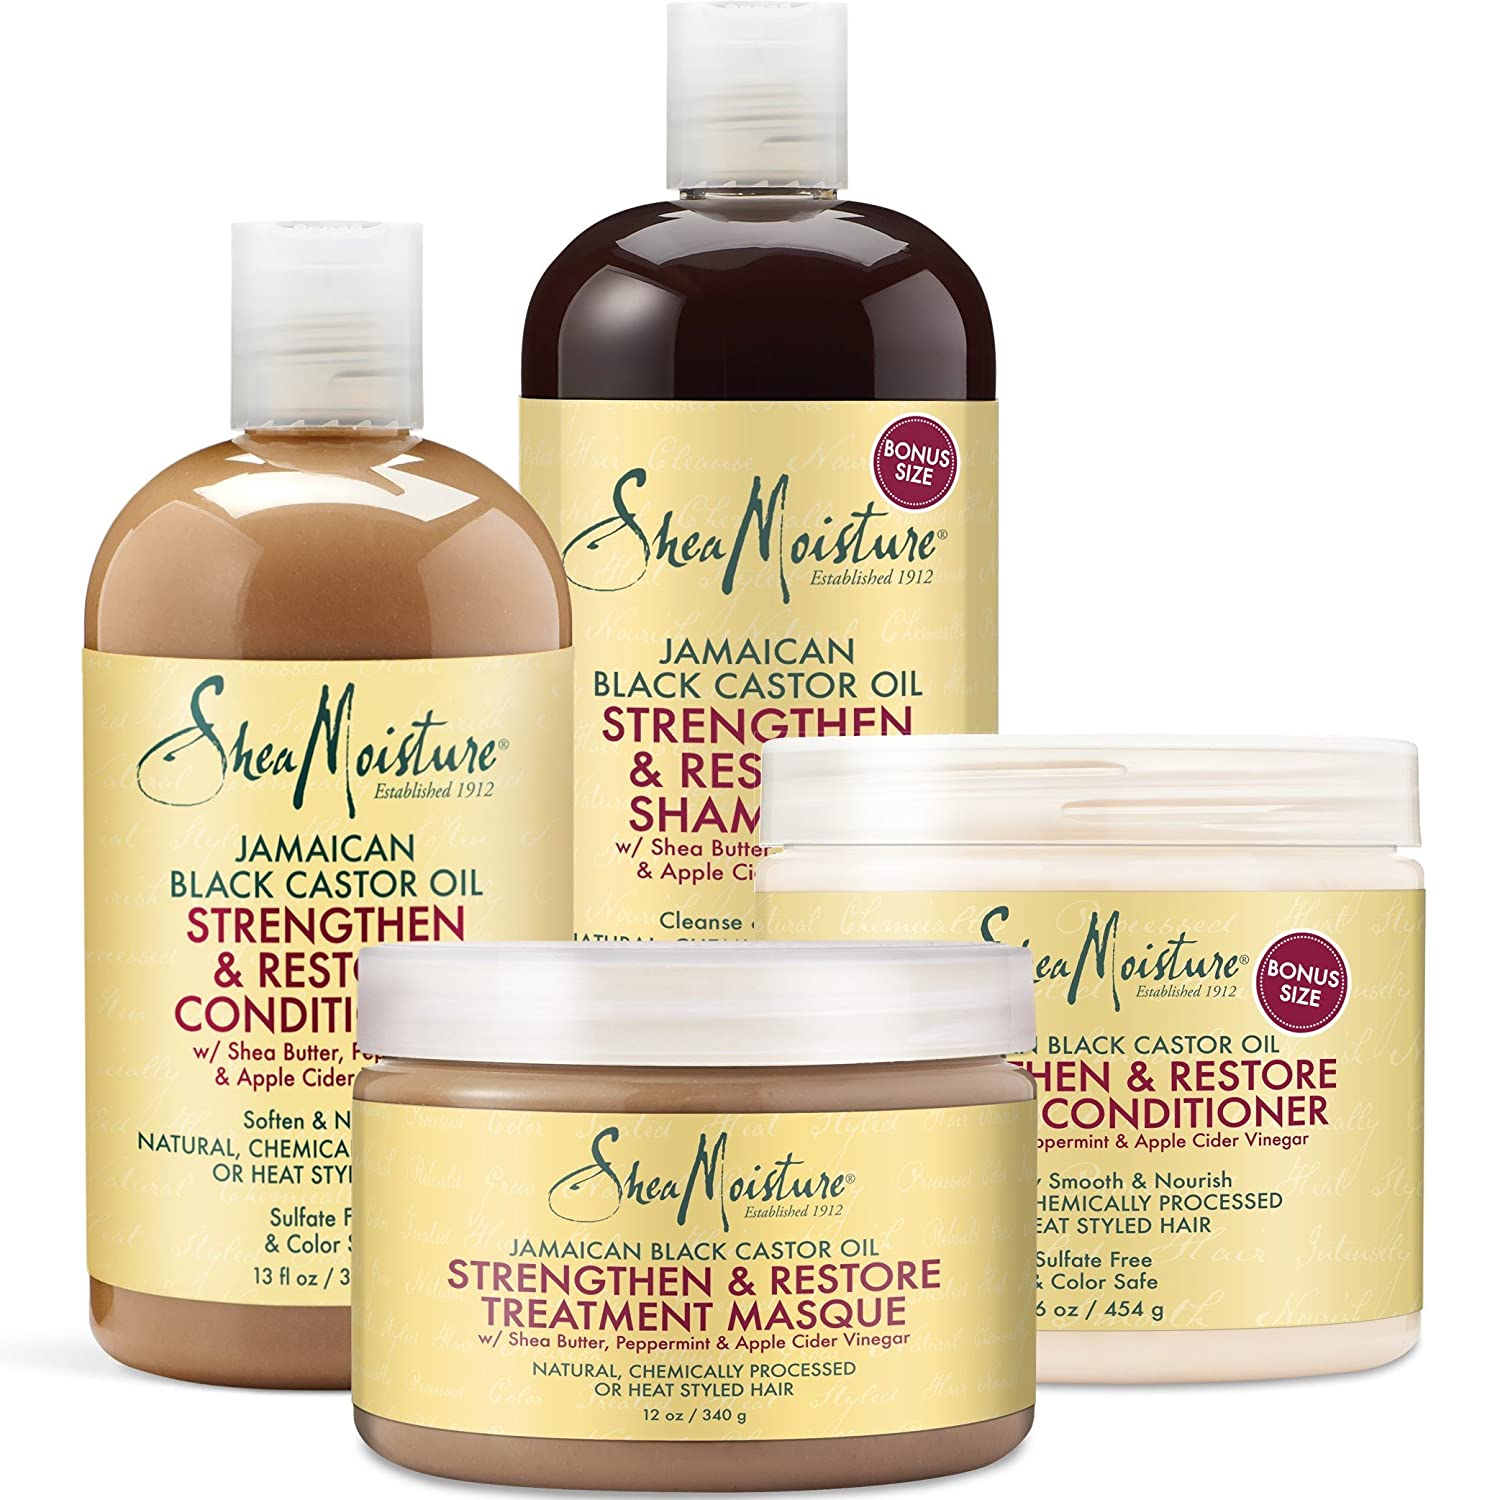 Shea Moisture Strengthen Grow & Restore Combo Bundle, Includes - 16.3 Ounce Jamaican Black Castor Oil Shampoo | 16 Ounce Leave-In Conditioner | 13 Ounce Conditioner | 12 Ounce Treatment Masque